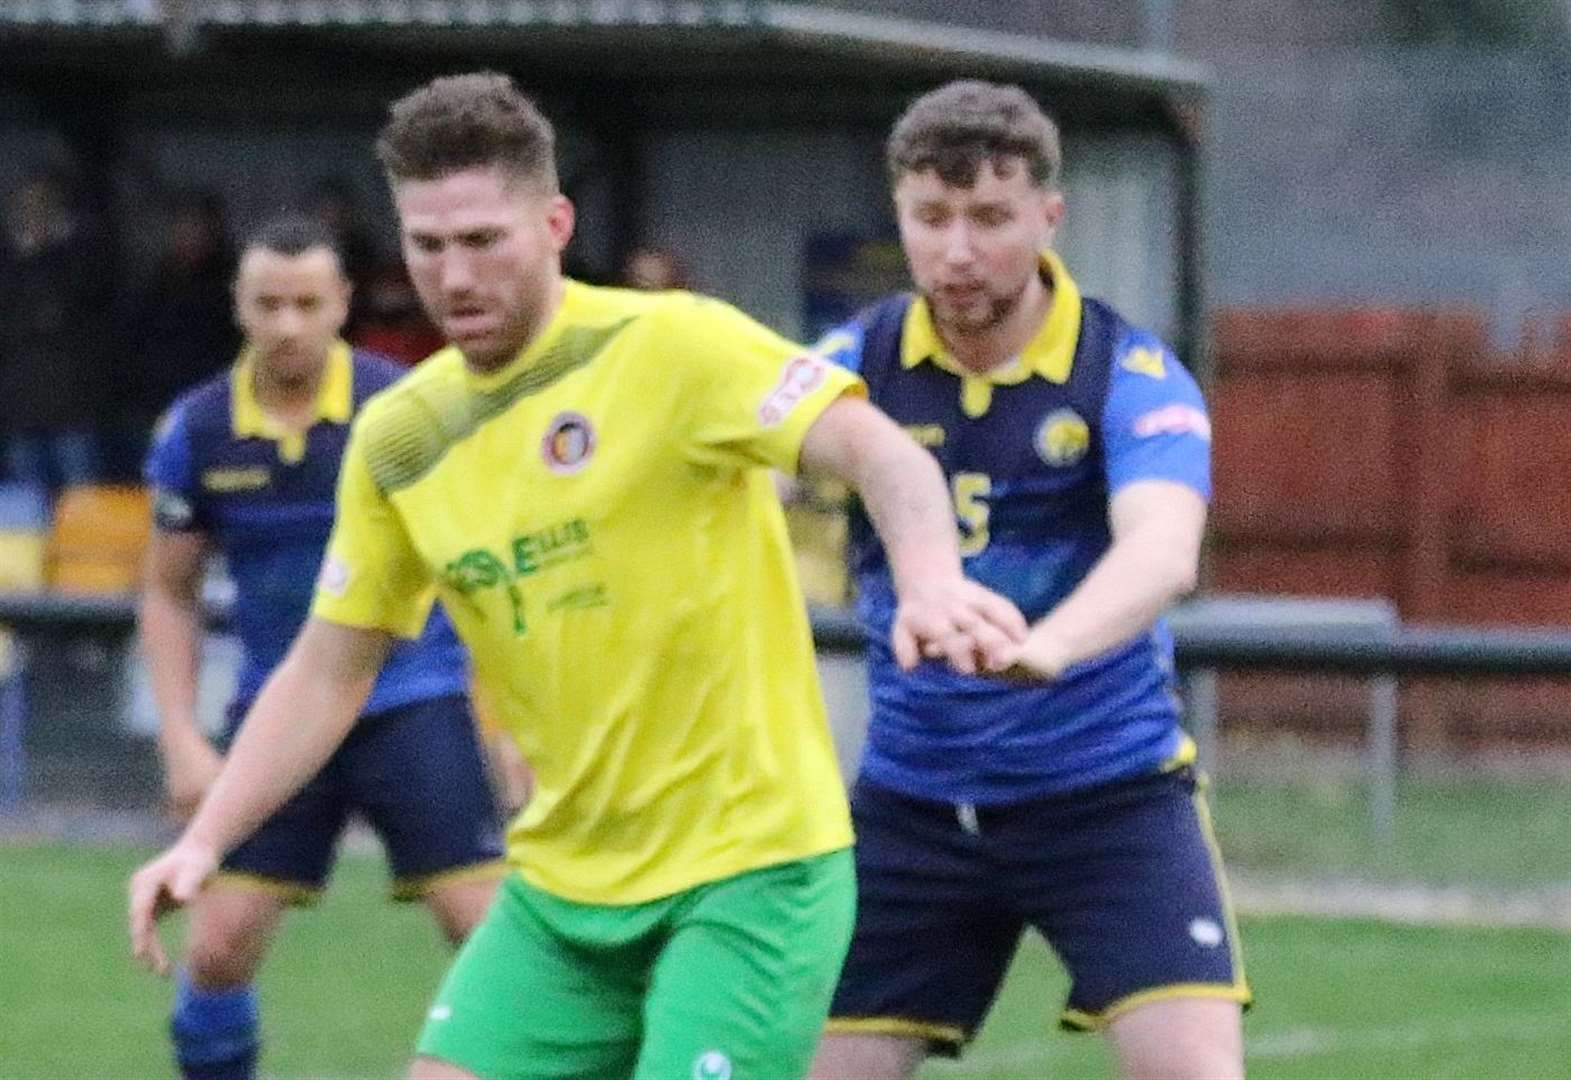 FOOTBALL: Striker Sands is transfer target after Royston raid